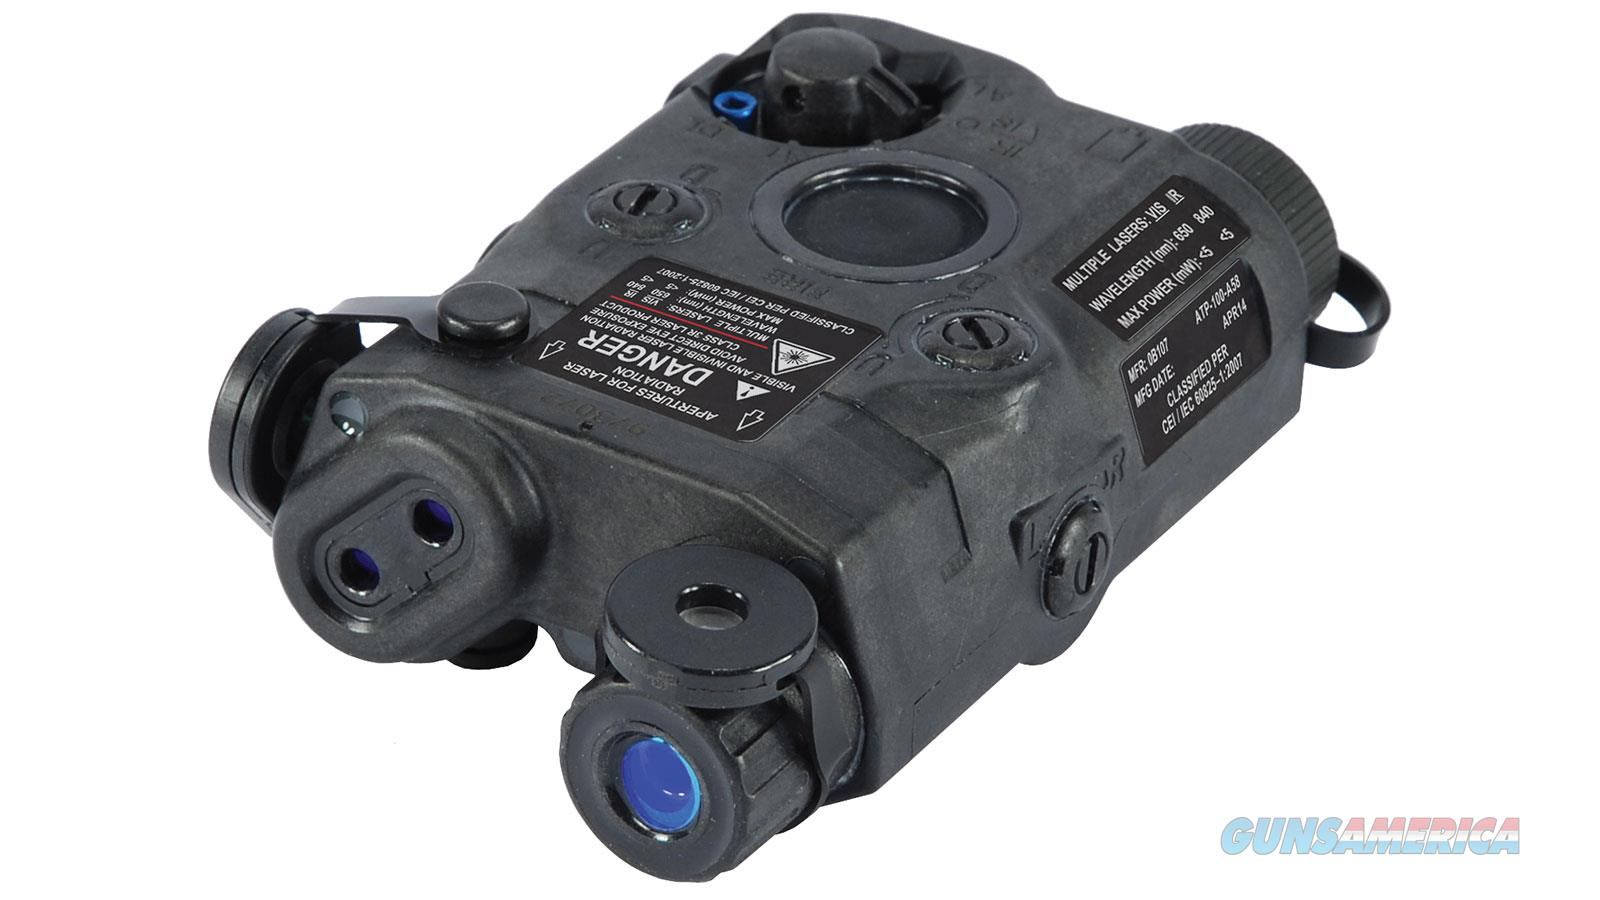 Eotech L3 Communication Laser Commercial Low Power ATP000A58  Non-Guns > Scopes/Mounts/Rings & Optics > Mounts > Other